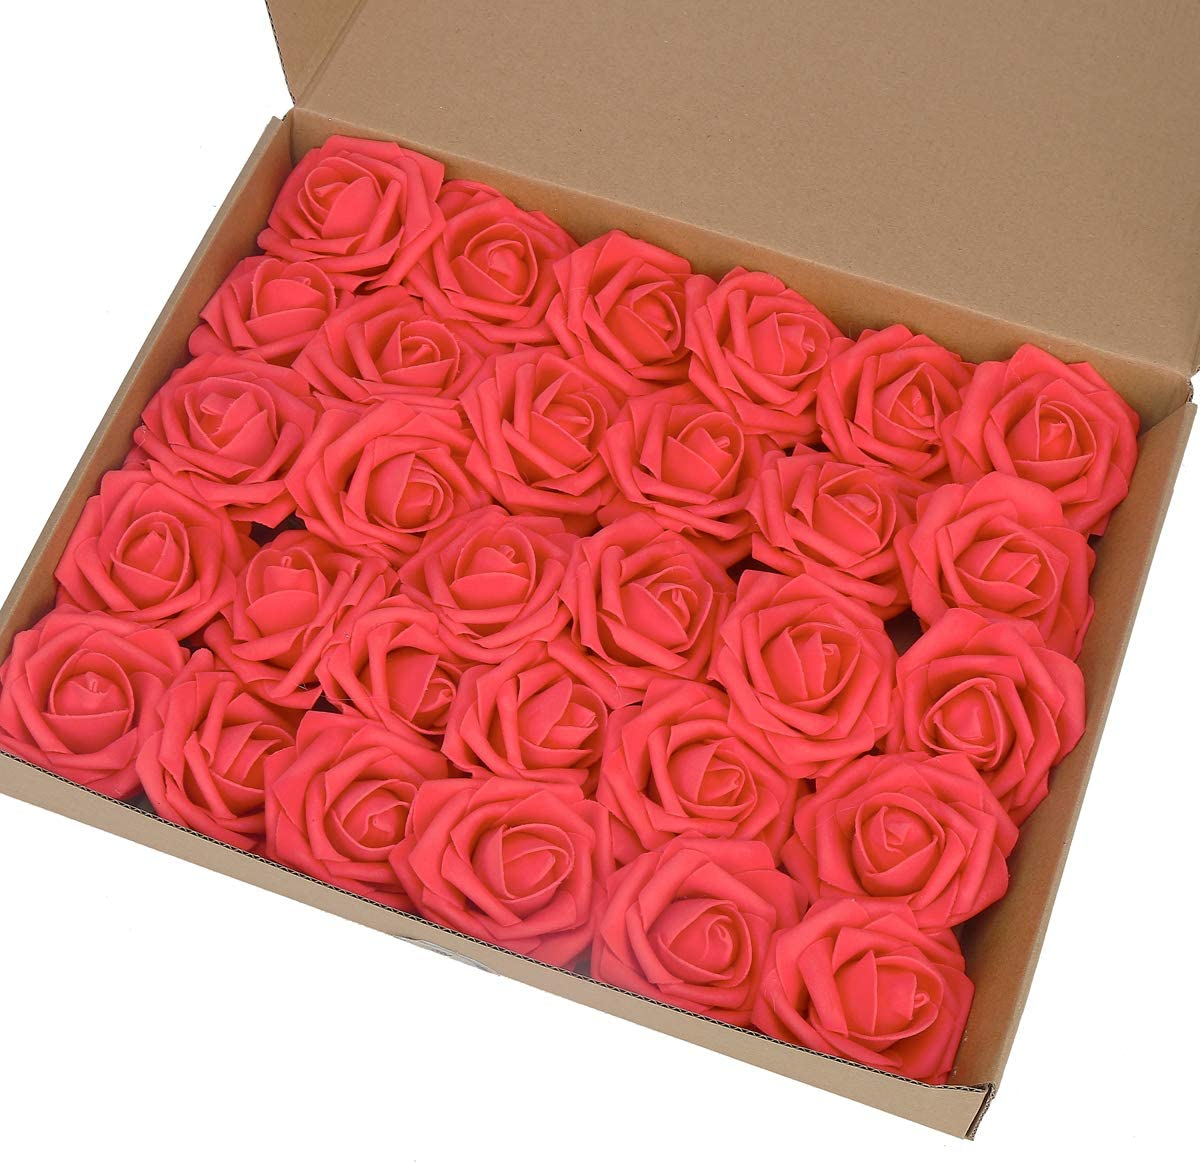 MACTING Artificial Flower Rose, 30pcs Real Touch Artificial Roses for DIY Bouquets Wedding Party Baby Shower Home Decor (Light Pink Red)